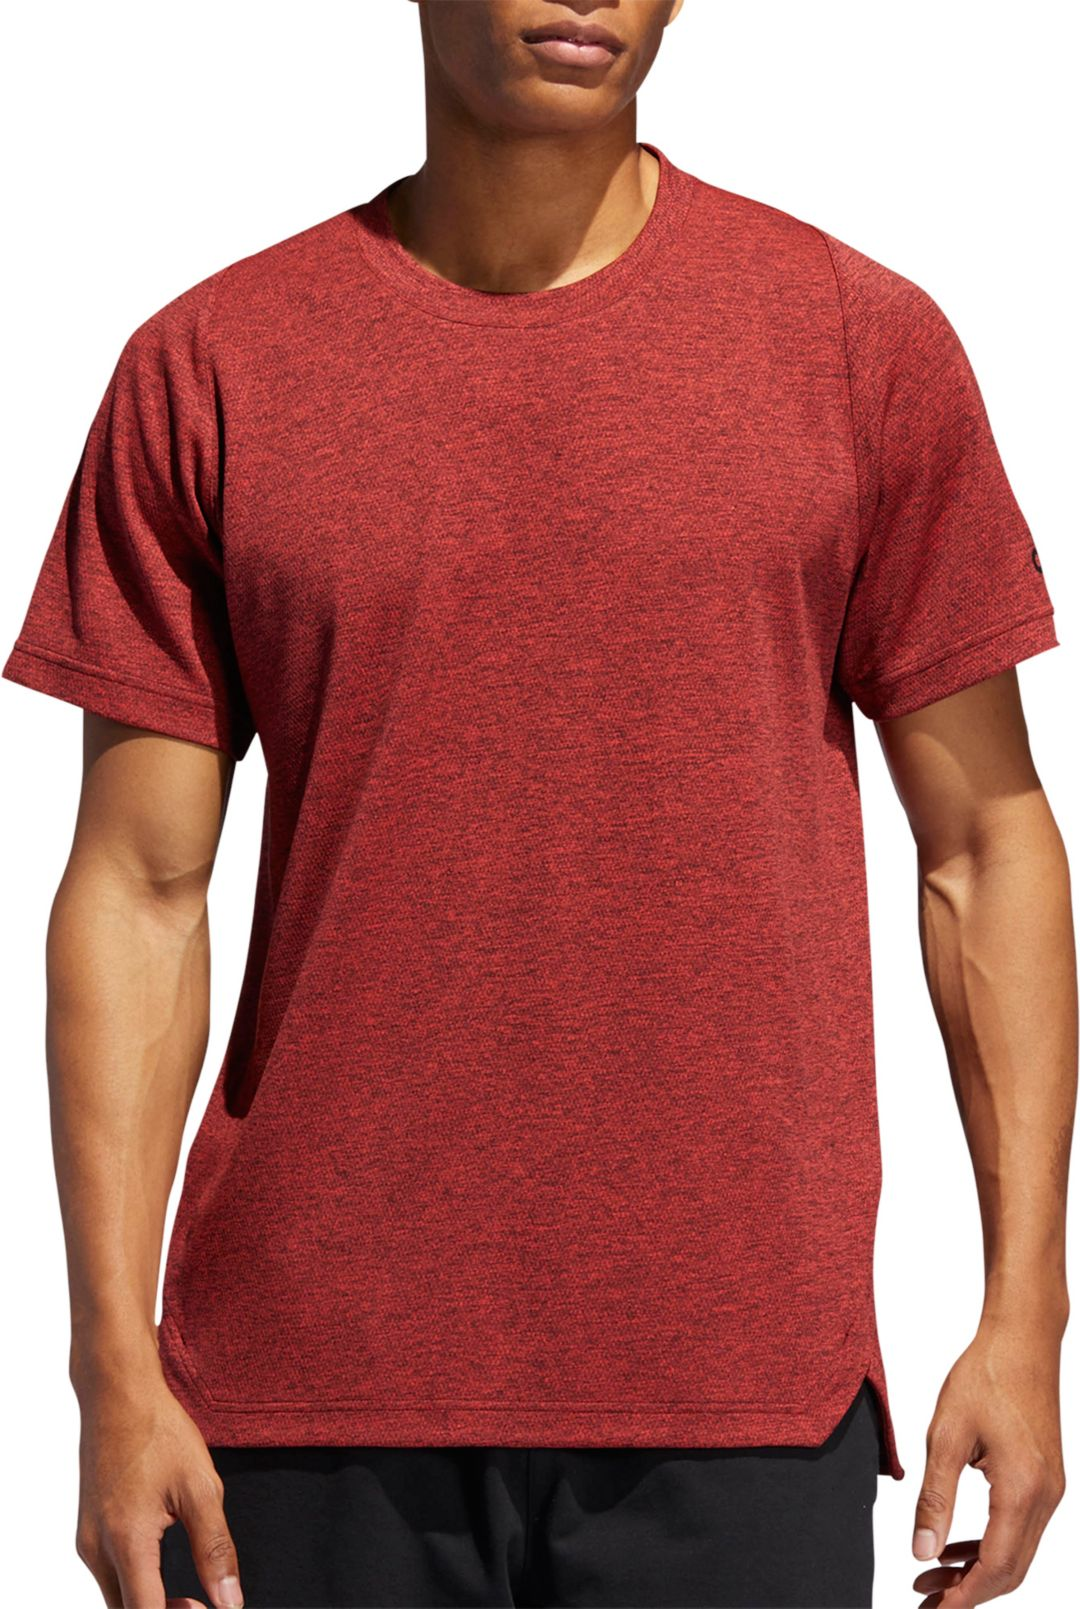 a415130d5bc06 adidas Men's Axis Elevated T-Shirt